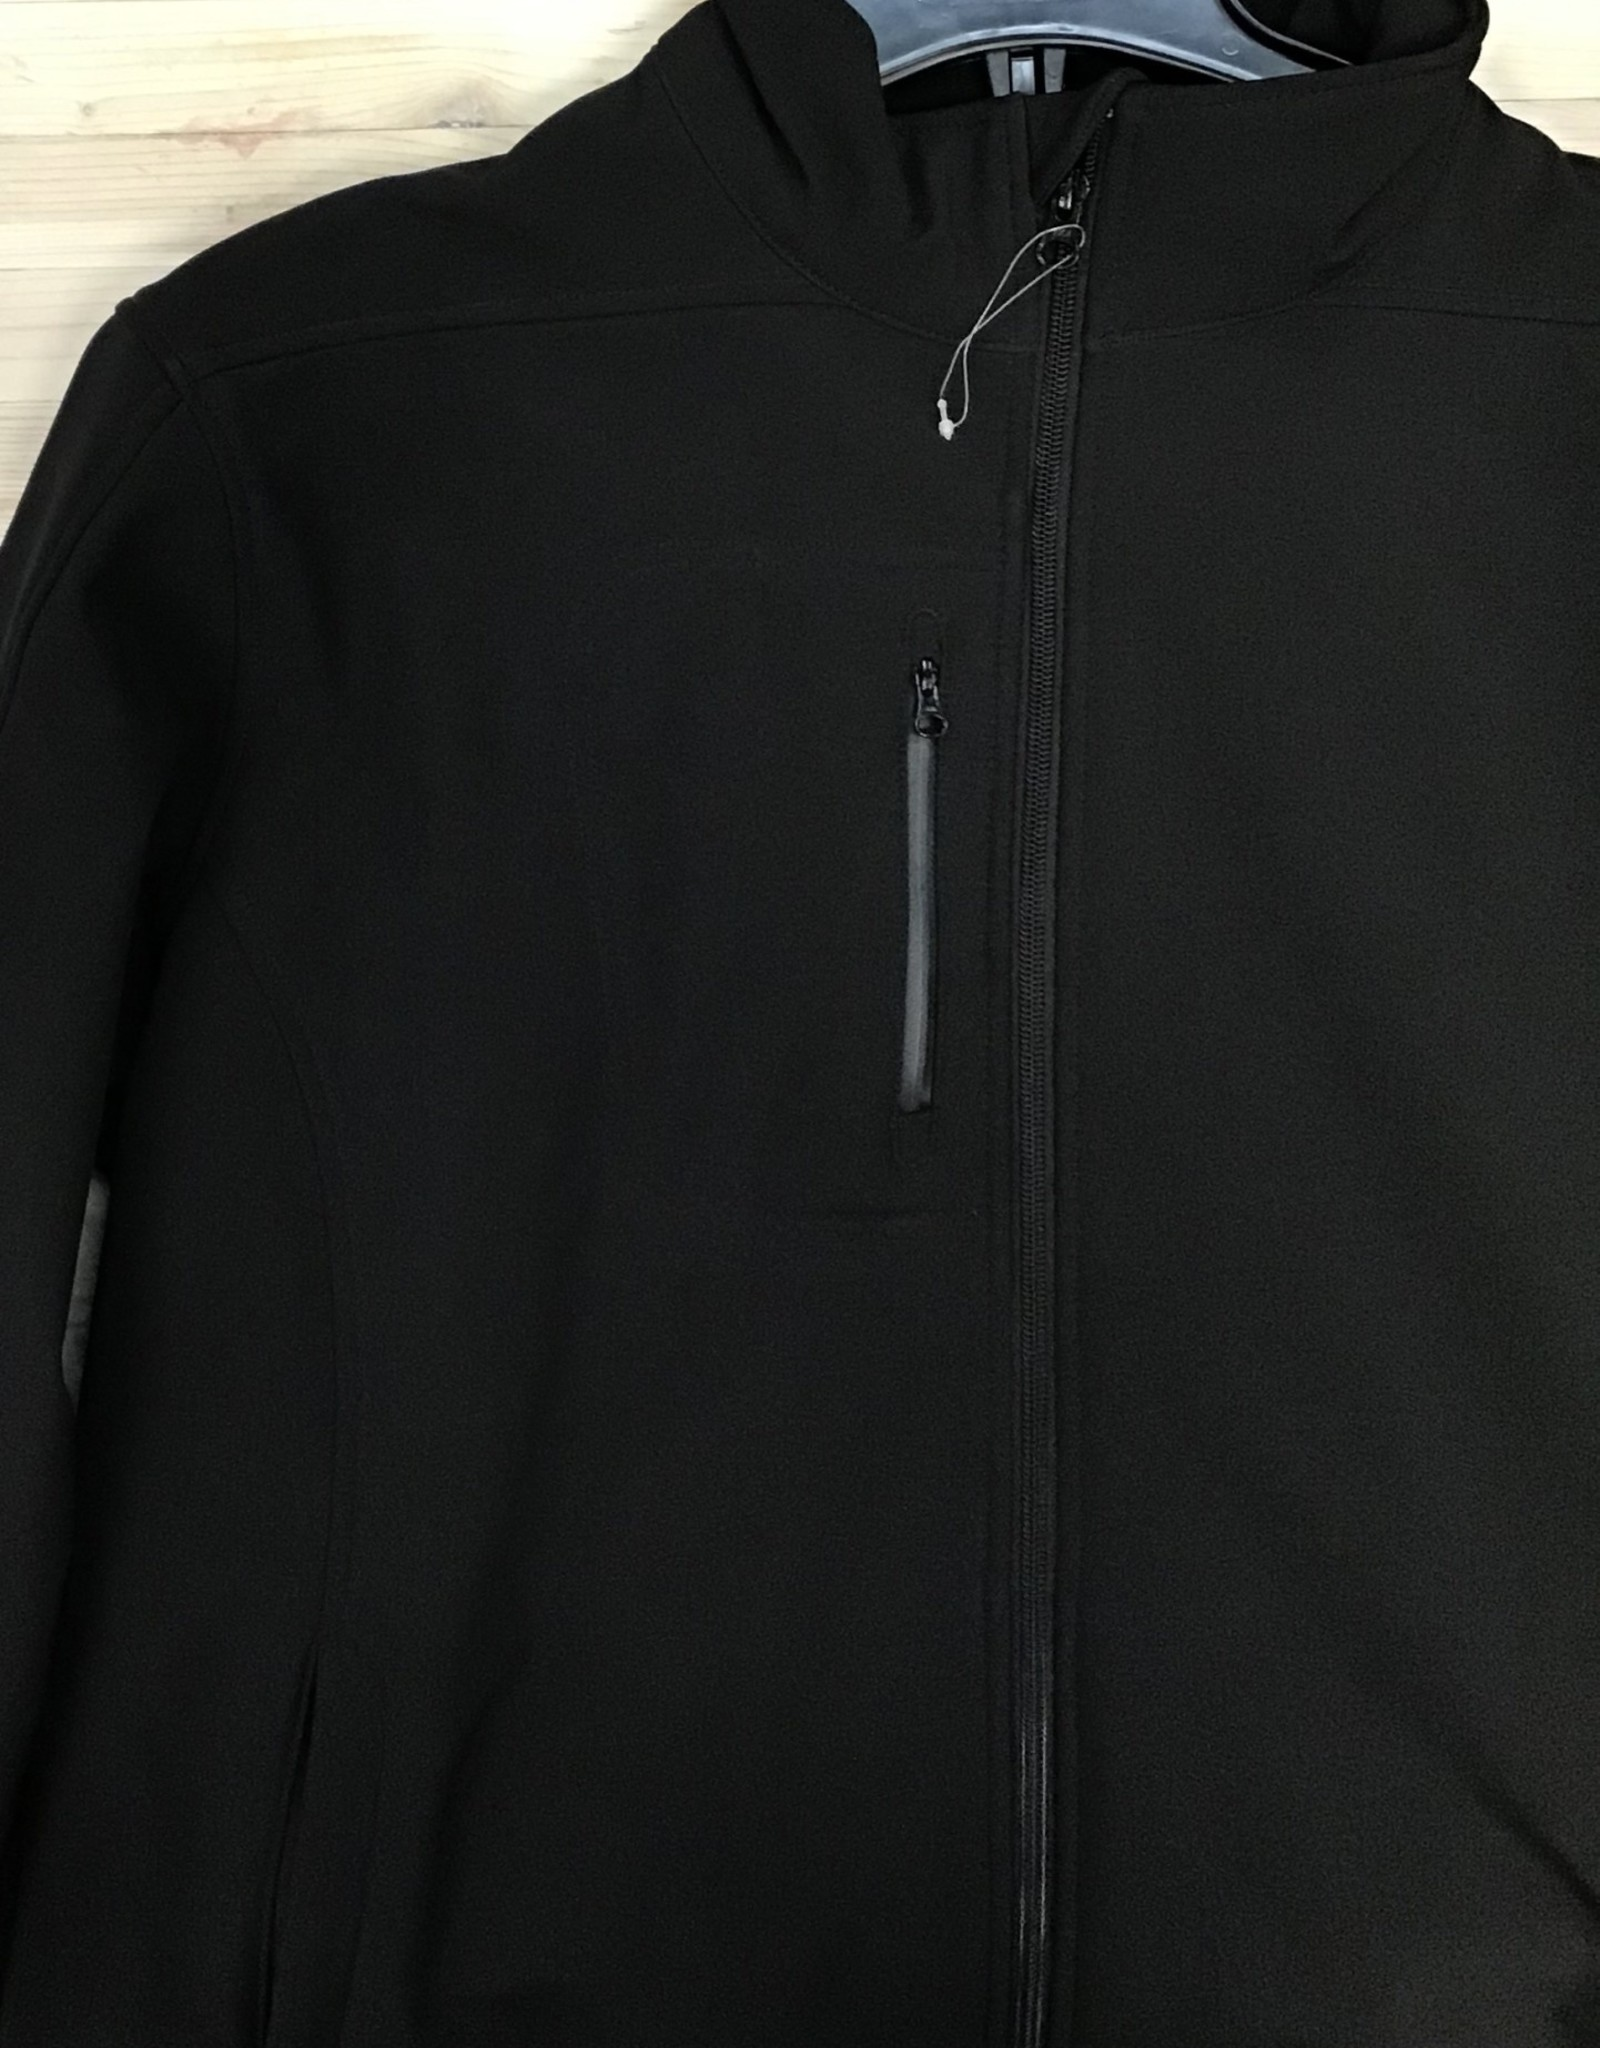 CX2 CX2 3 Layer Protection Softshell Jacket Ladies'